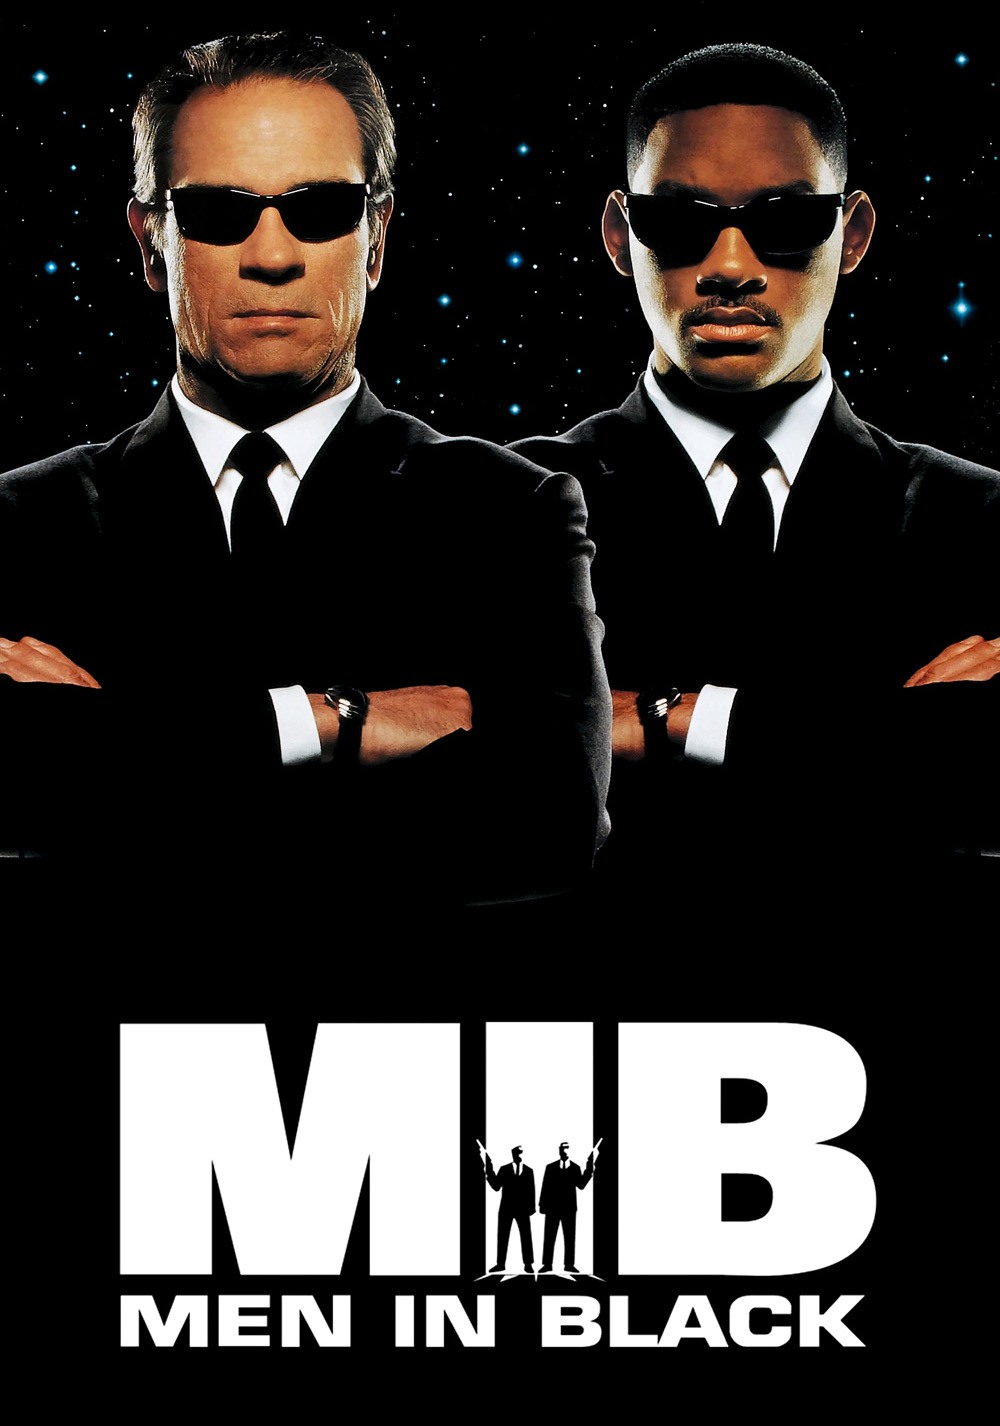 Men in Black 1 (1997) ταινιες online seires oipeirates greek subs